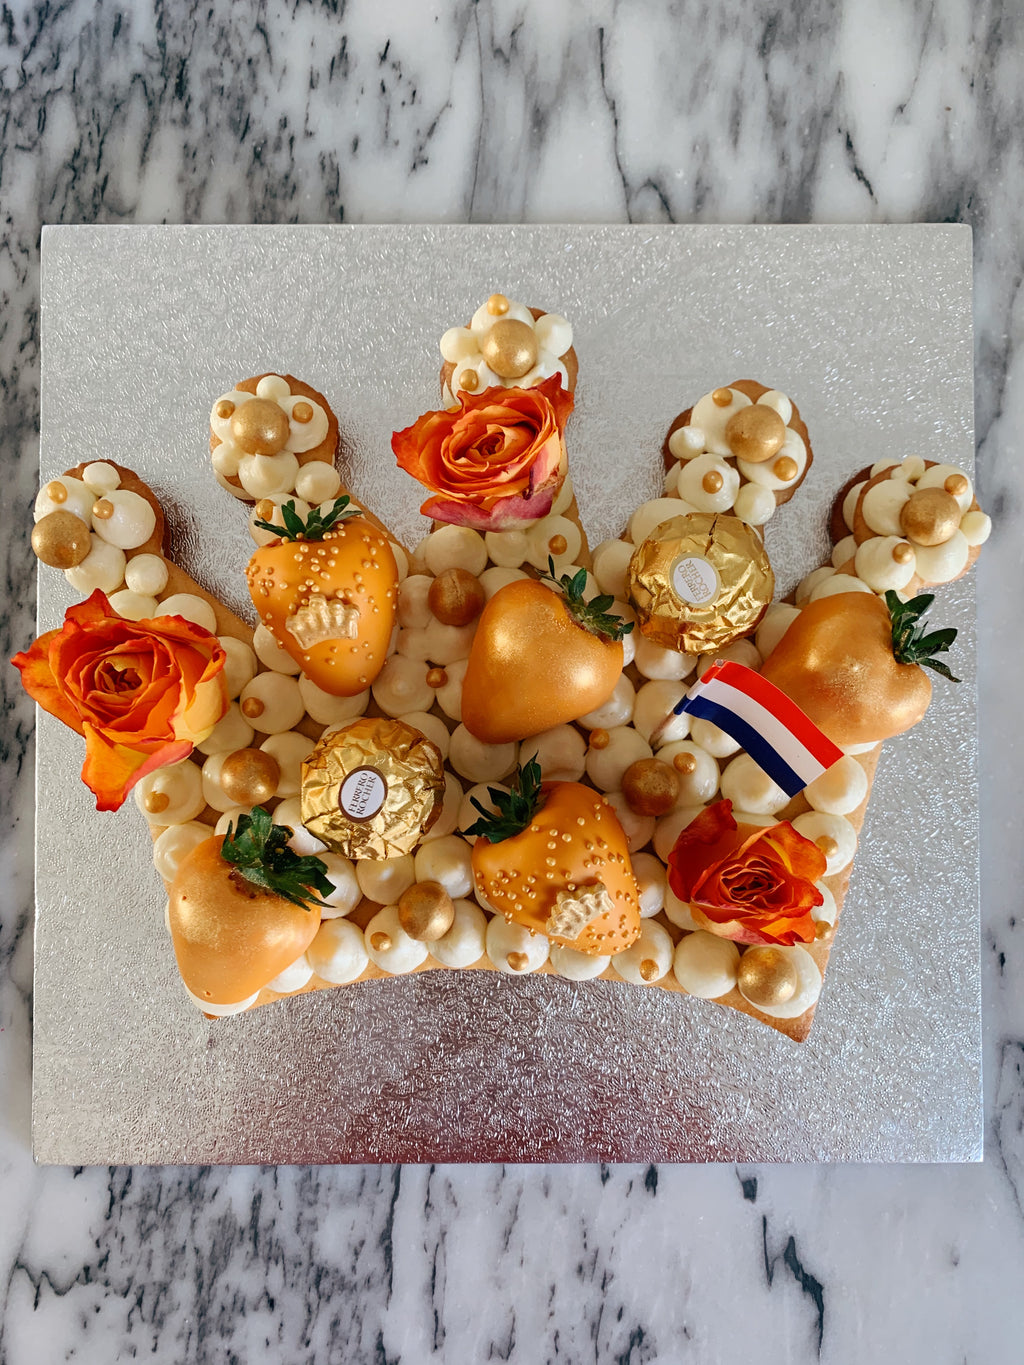 Kings Crown Cake 2020